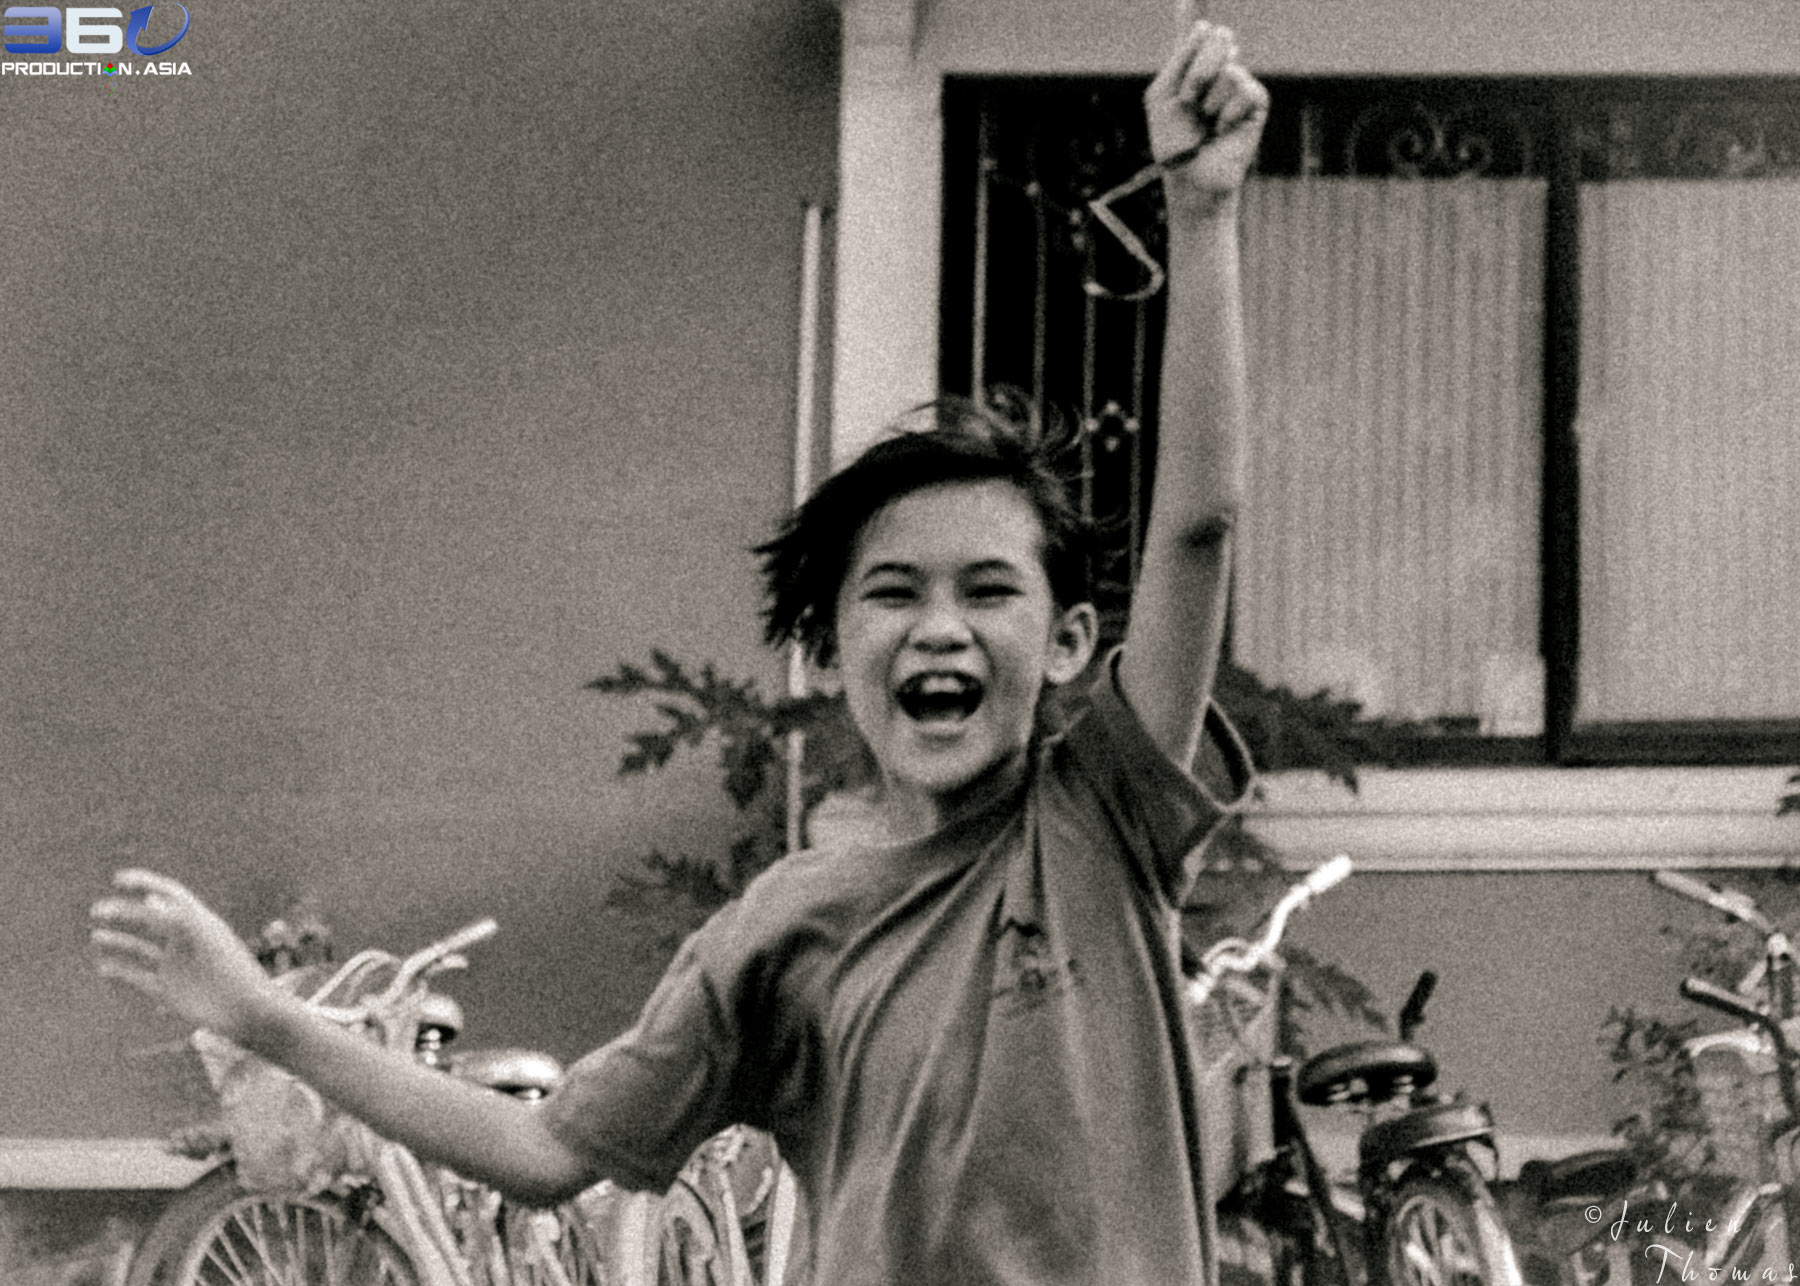 Child run with big smile very excited play with a kite in Maison Chance Vietnam by Julien Thomas